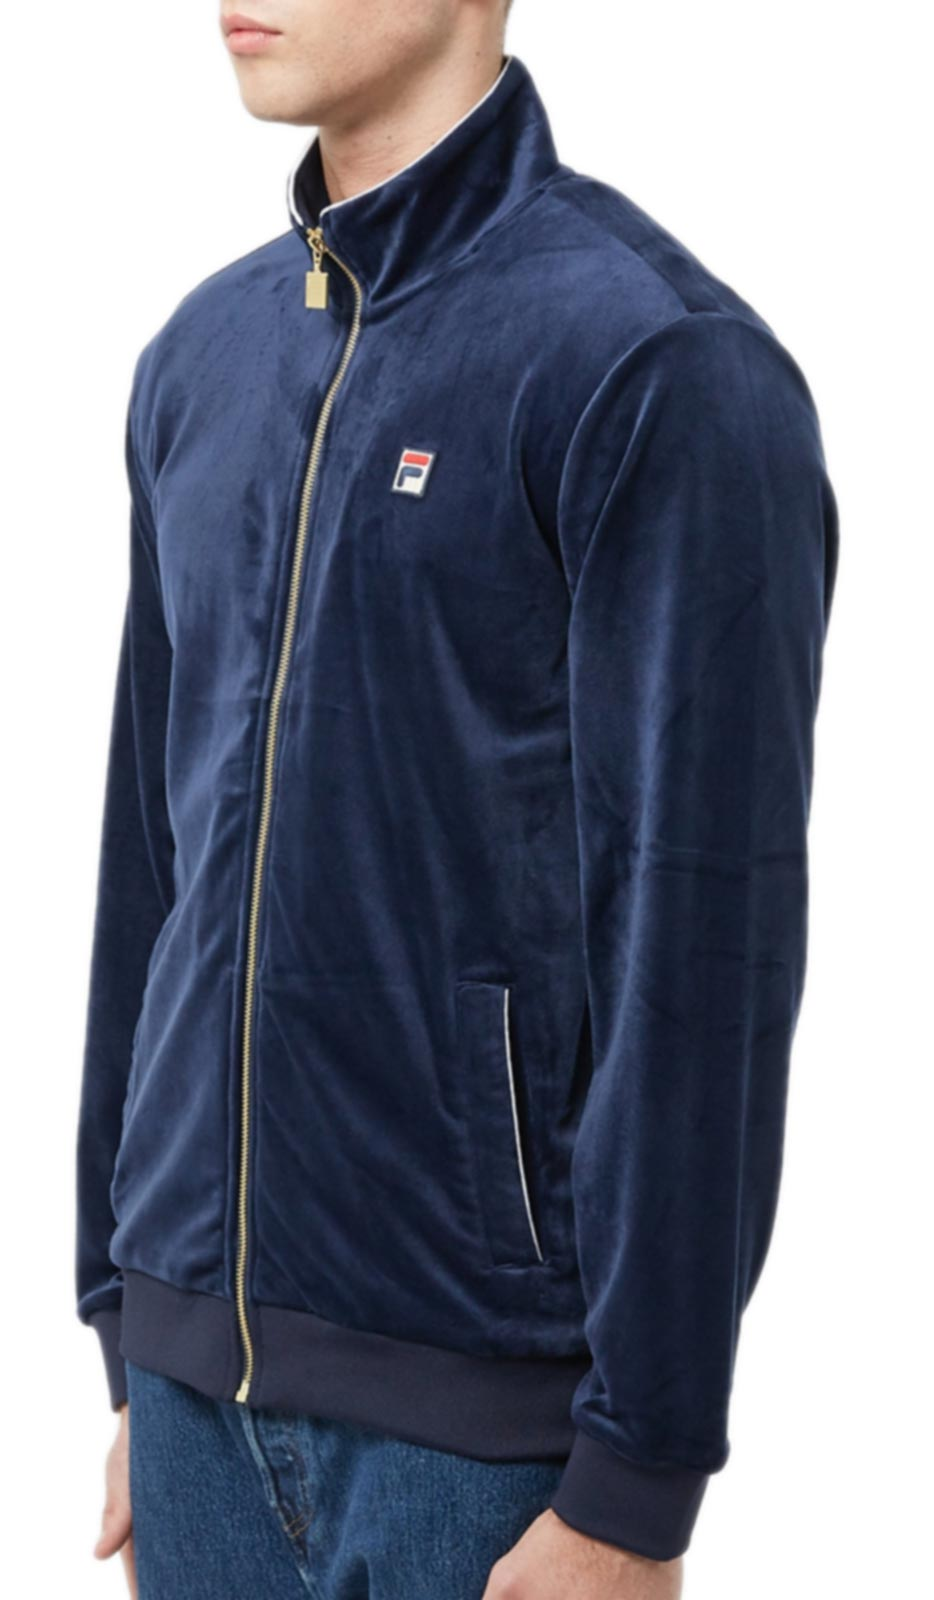 Fila Irving Velour Track Top Navy